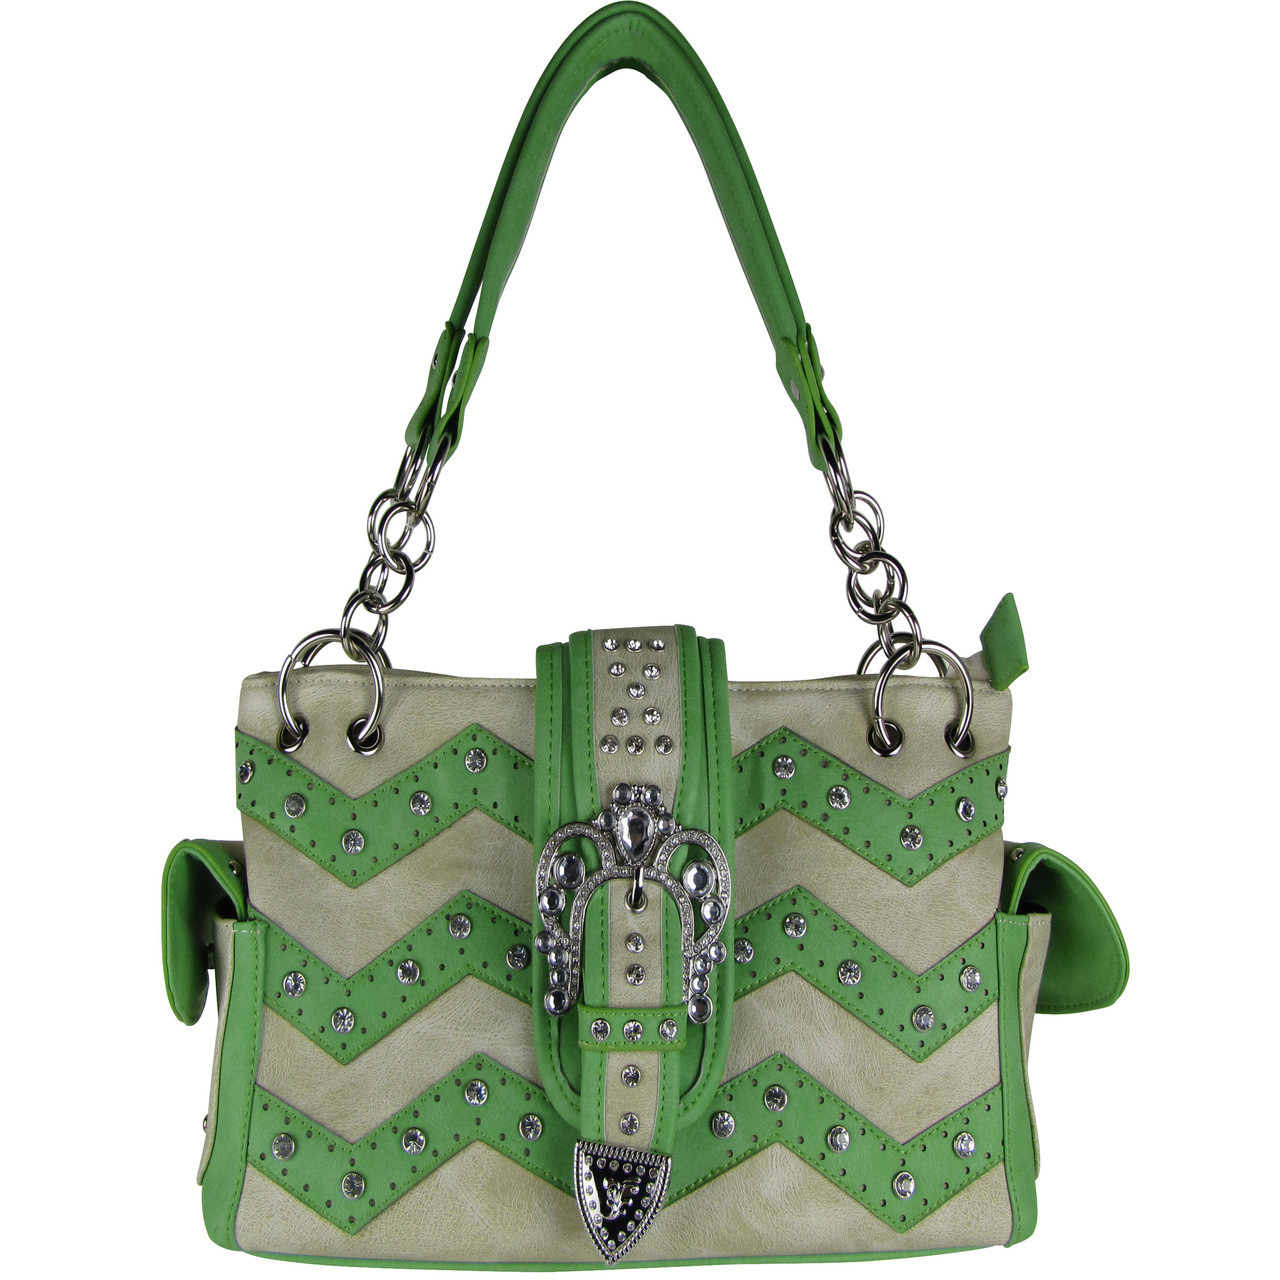 GREEN RHINESTONE BUCKLE LOOK SHOULDER HANDBAG HB1-939WVGRN